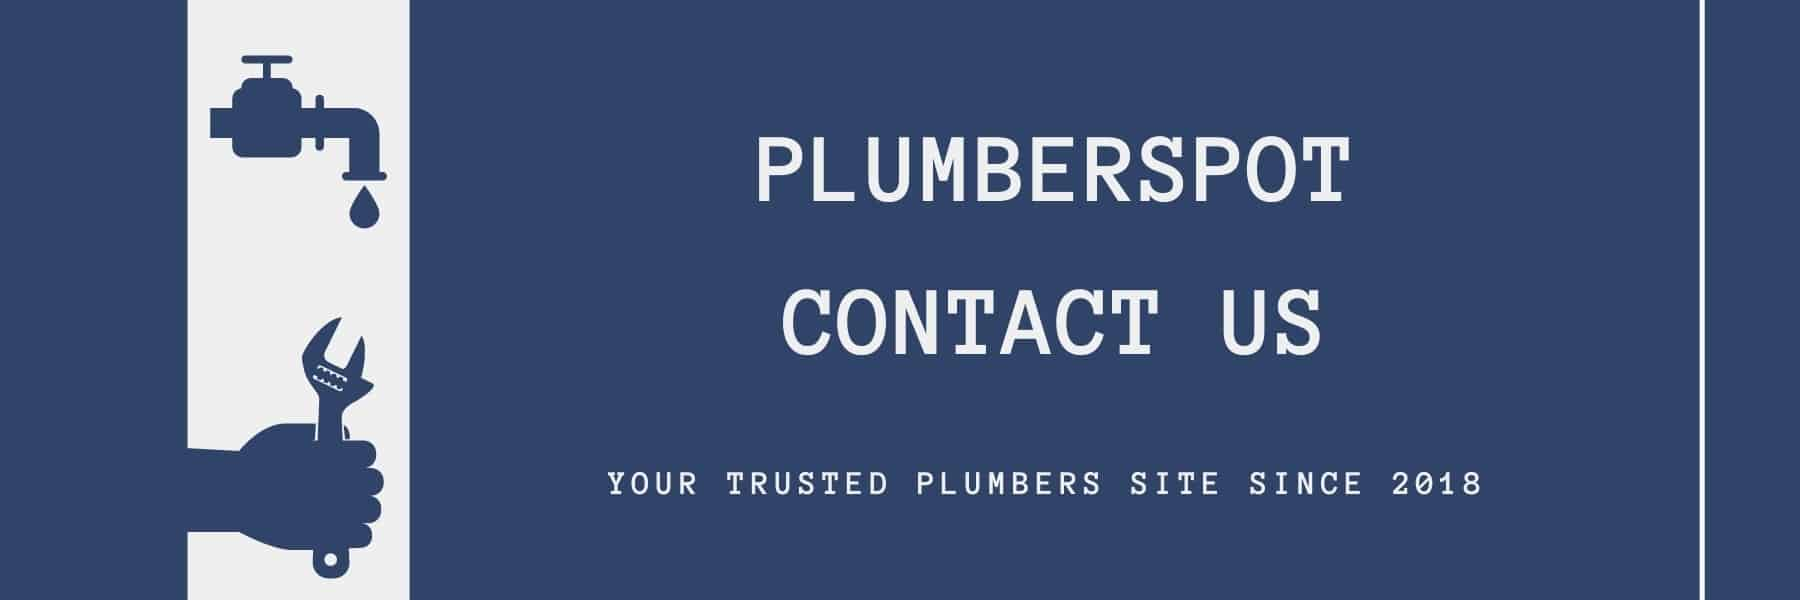 Plumberspot Contact Us Page